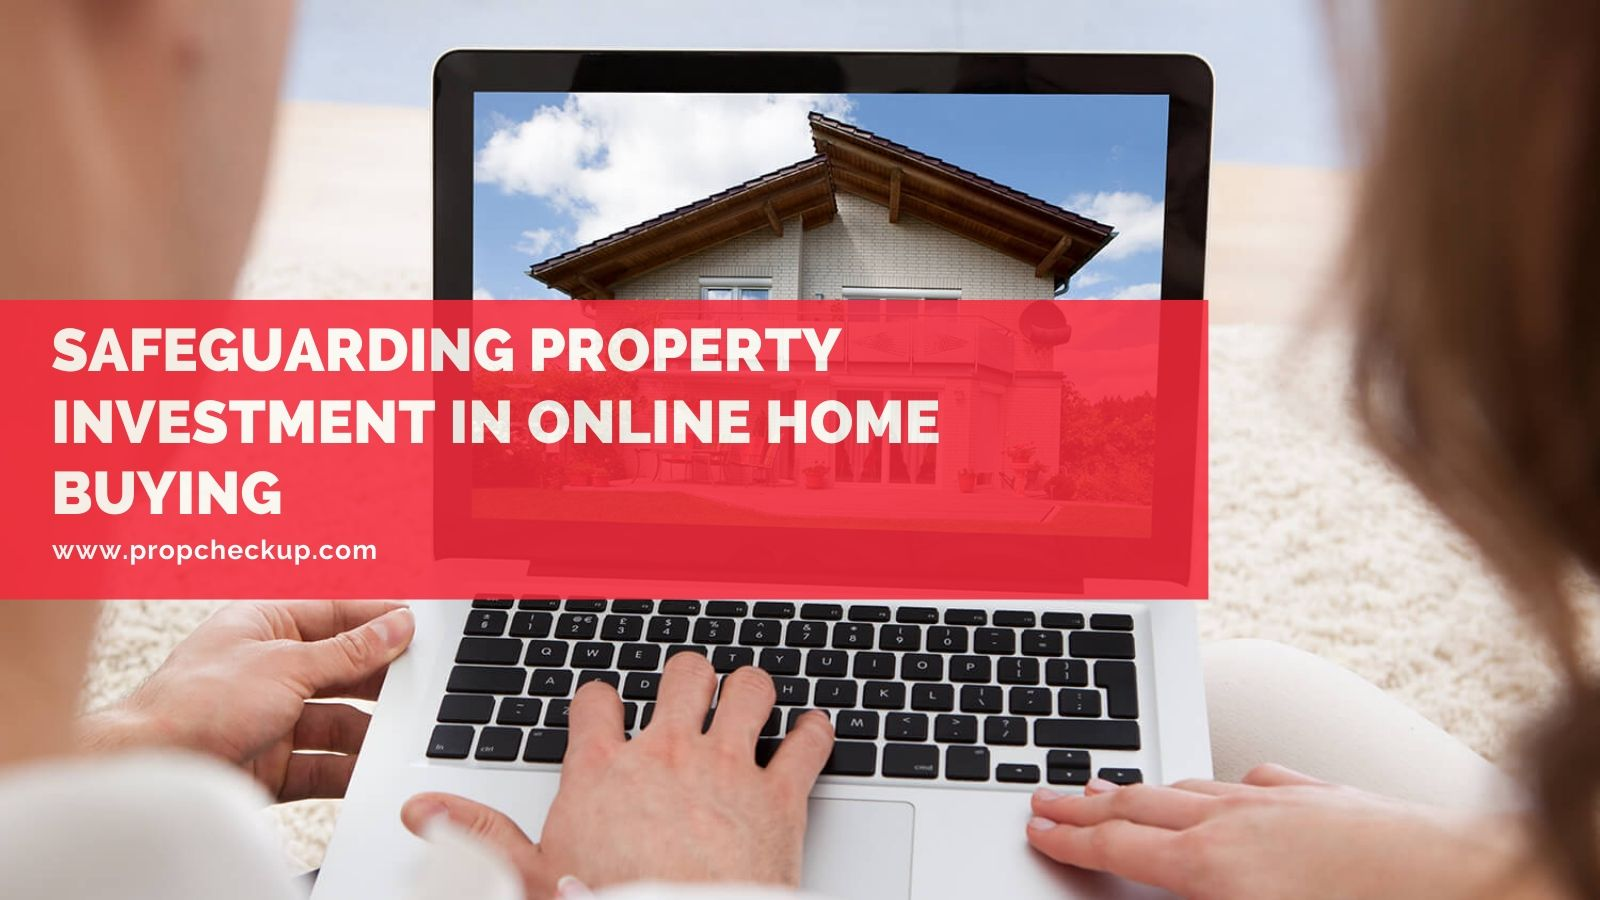 Safeguarding Your Property Investment In Online Home Buying